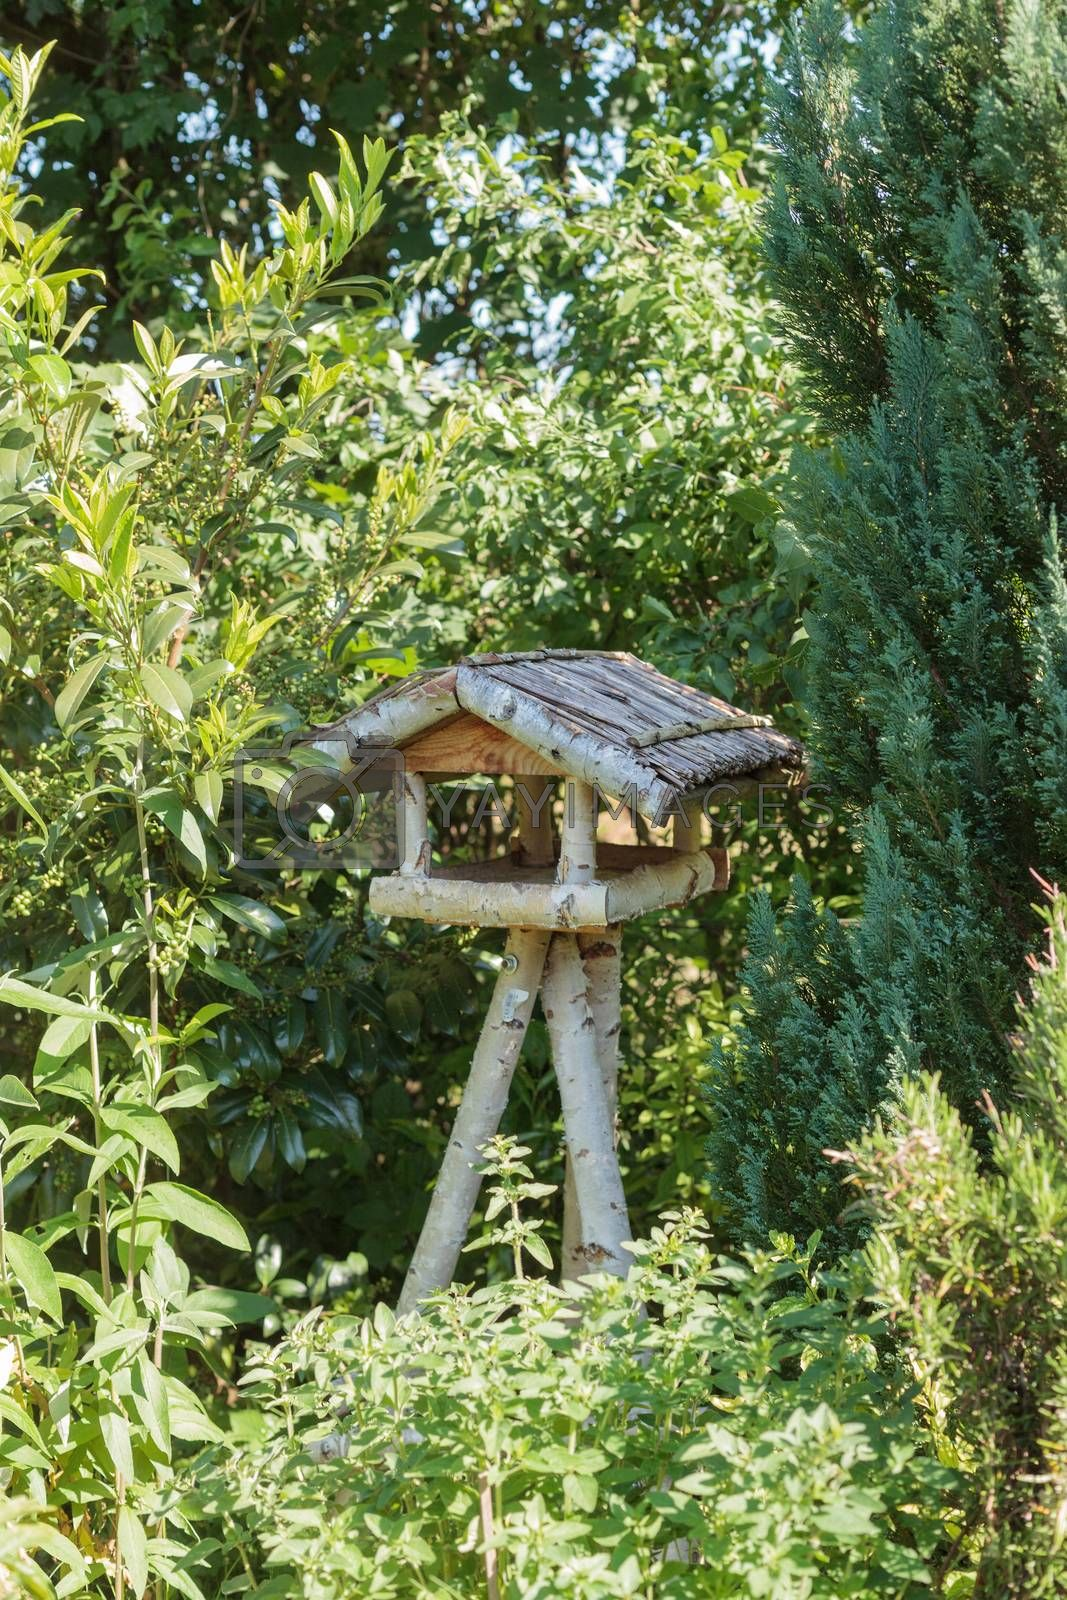 Rustic three-legged wooden bird table made from tree branches with sheltered platform and roof in sunlight surrounded by green trees and shrubs